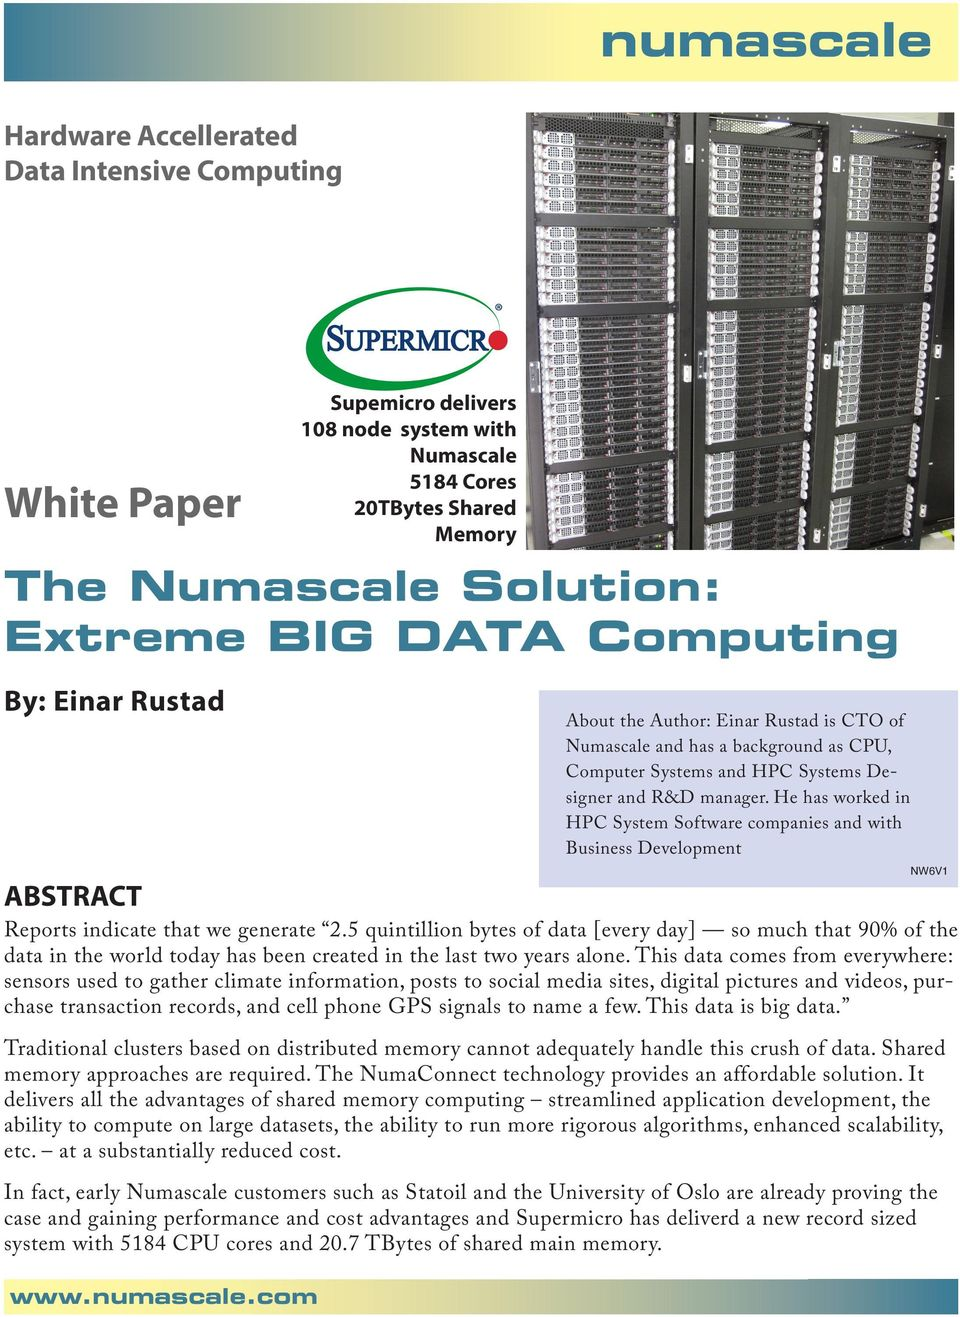 com Supemicro delivers 108 node system with Numascale 5184 Cores 20TBytes Shared Memory About the Author: Einar Rustad is CTO of Numascale and has a background as CPU, Computer Systems and HPC